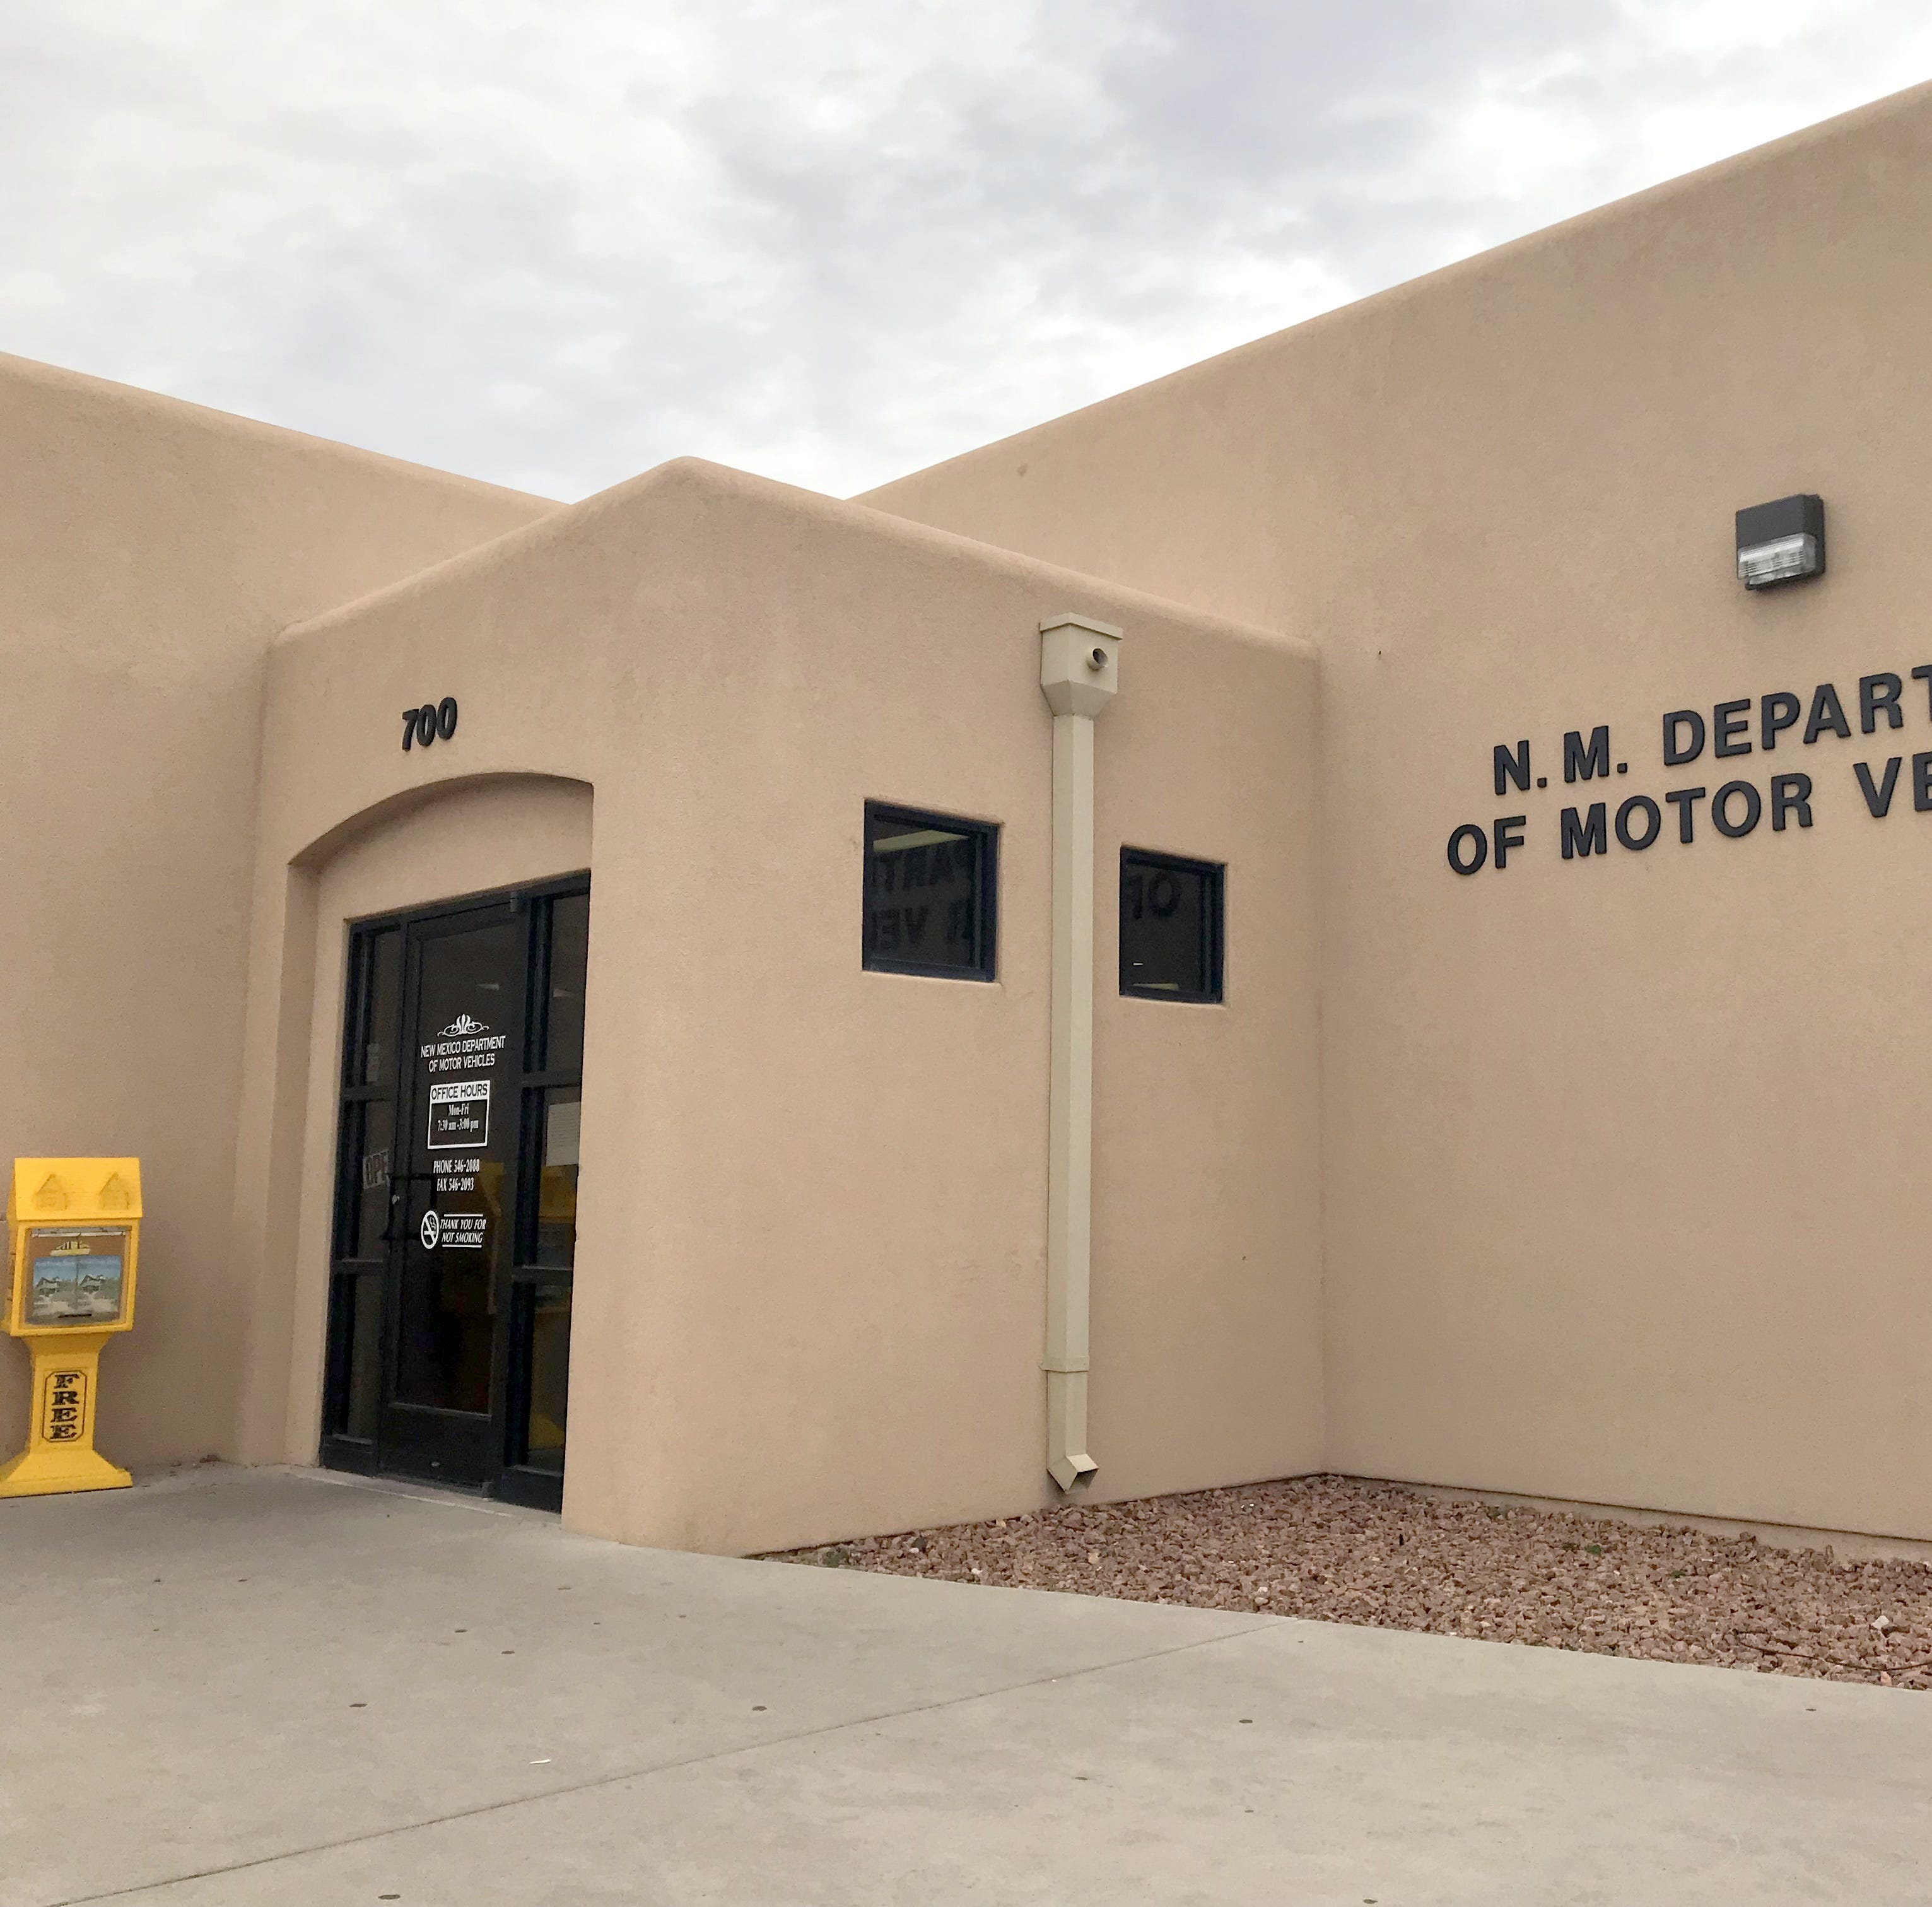 Motor Vehicles Division changes requirement for driver's license in New Mexico